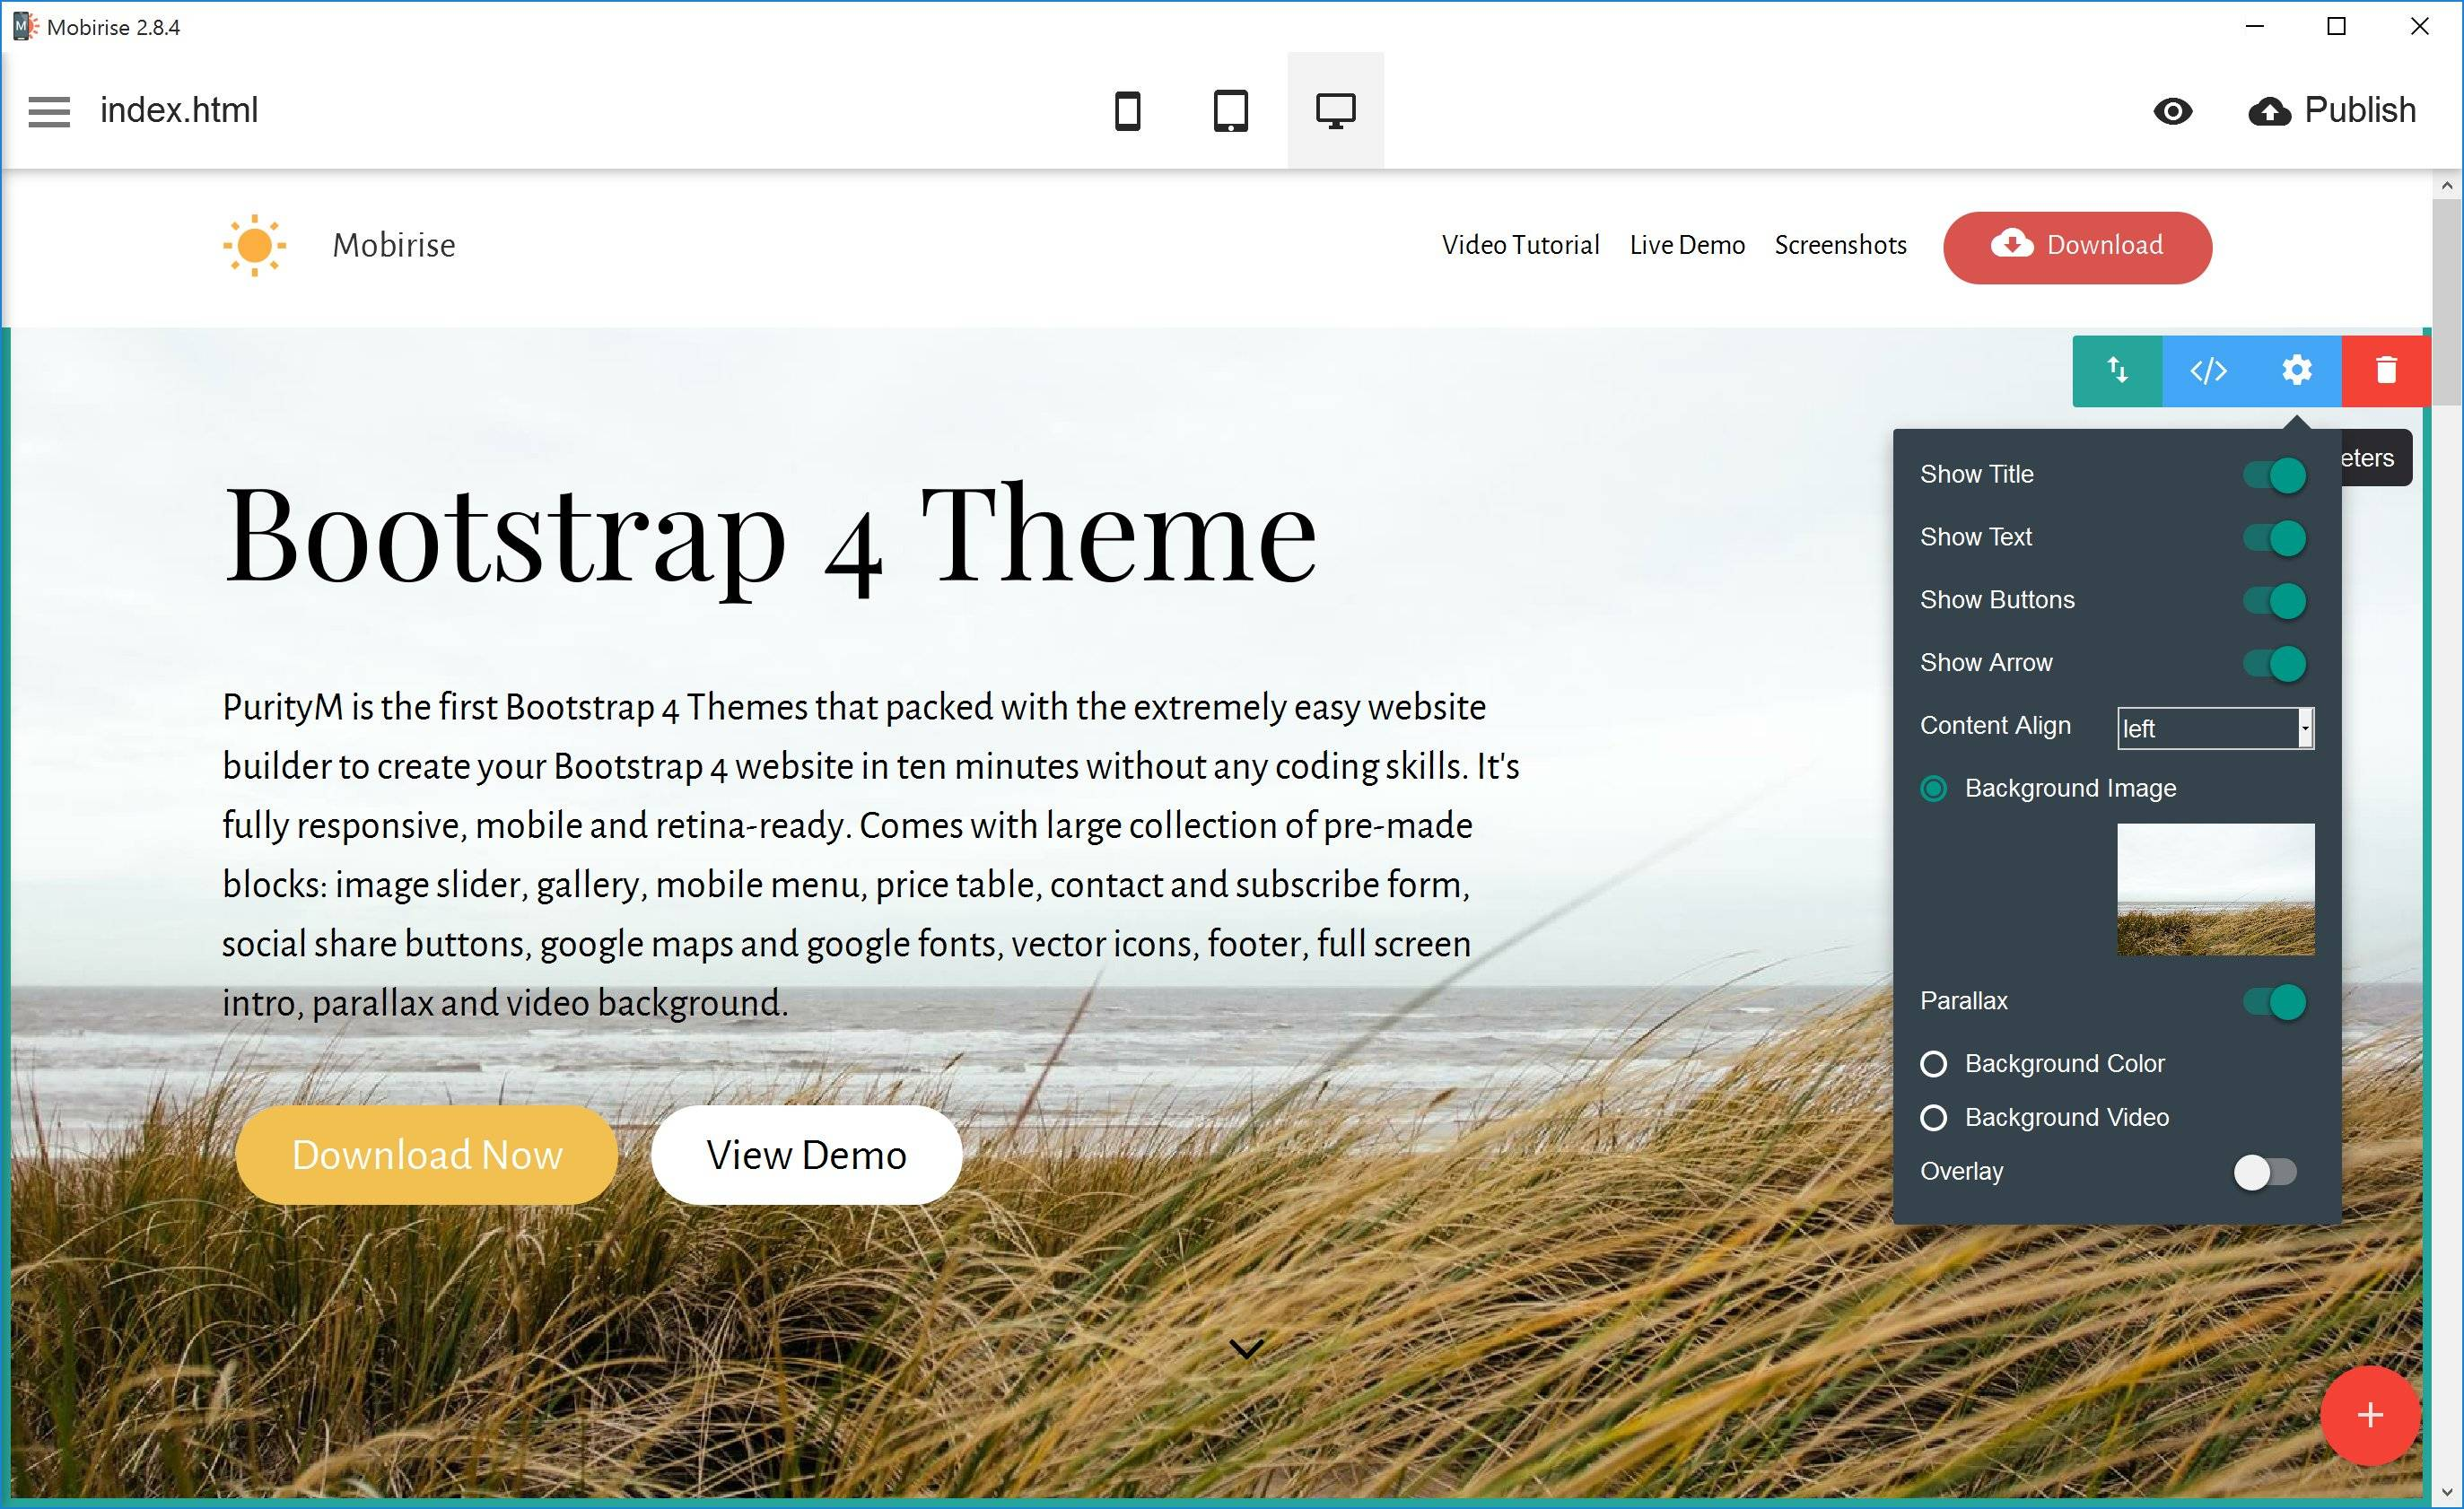 Mobirise Website Builder has announced the first website theme based on latest Bootstrap 4 alpha 2. Mobirise Website Builder helps the non-coders to create a mobile-optimized, trendy website. The latest release comes with an experimental Bootstrap 4 theme with a light, responsive layout that can be applied to any type of website.